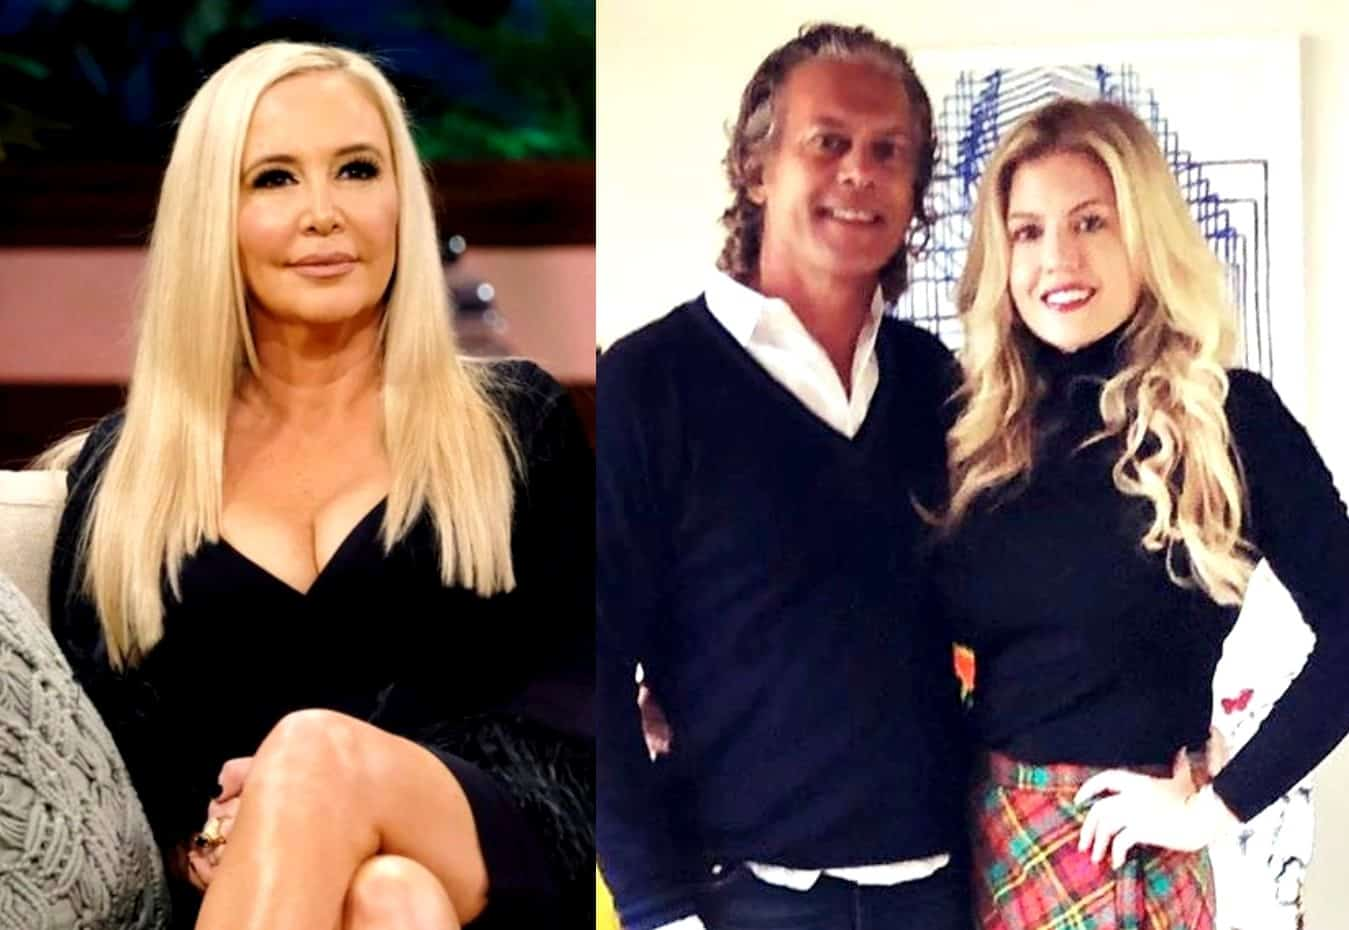 Shannon Beador Says She Sent Ex David Beador a Gift After Welcoming Baby With Wife Lesley Cook, Plus Are RHOC Exes On Speaking Terms?